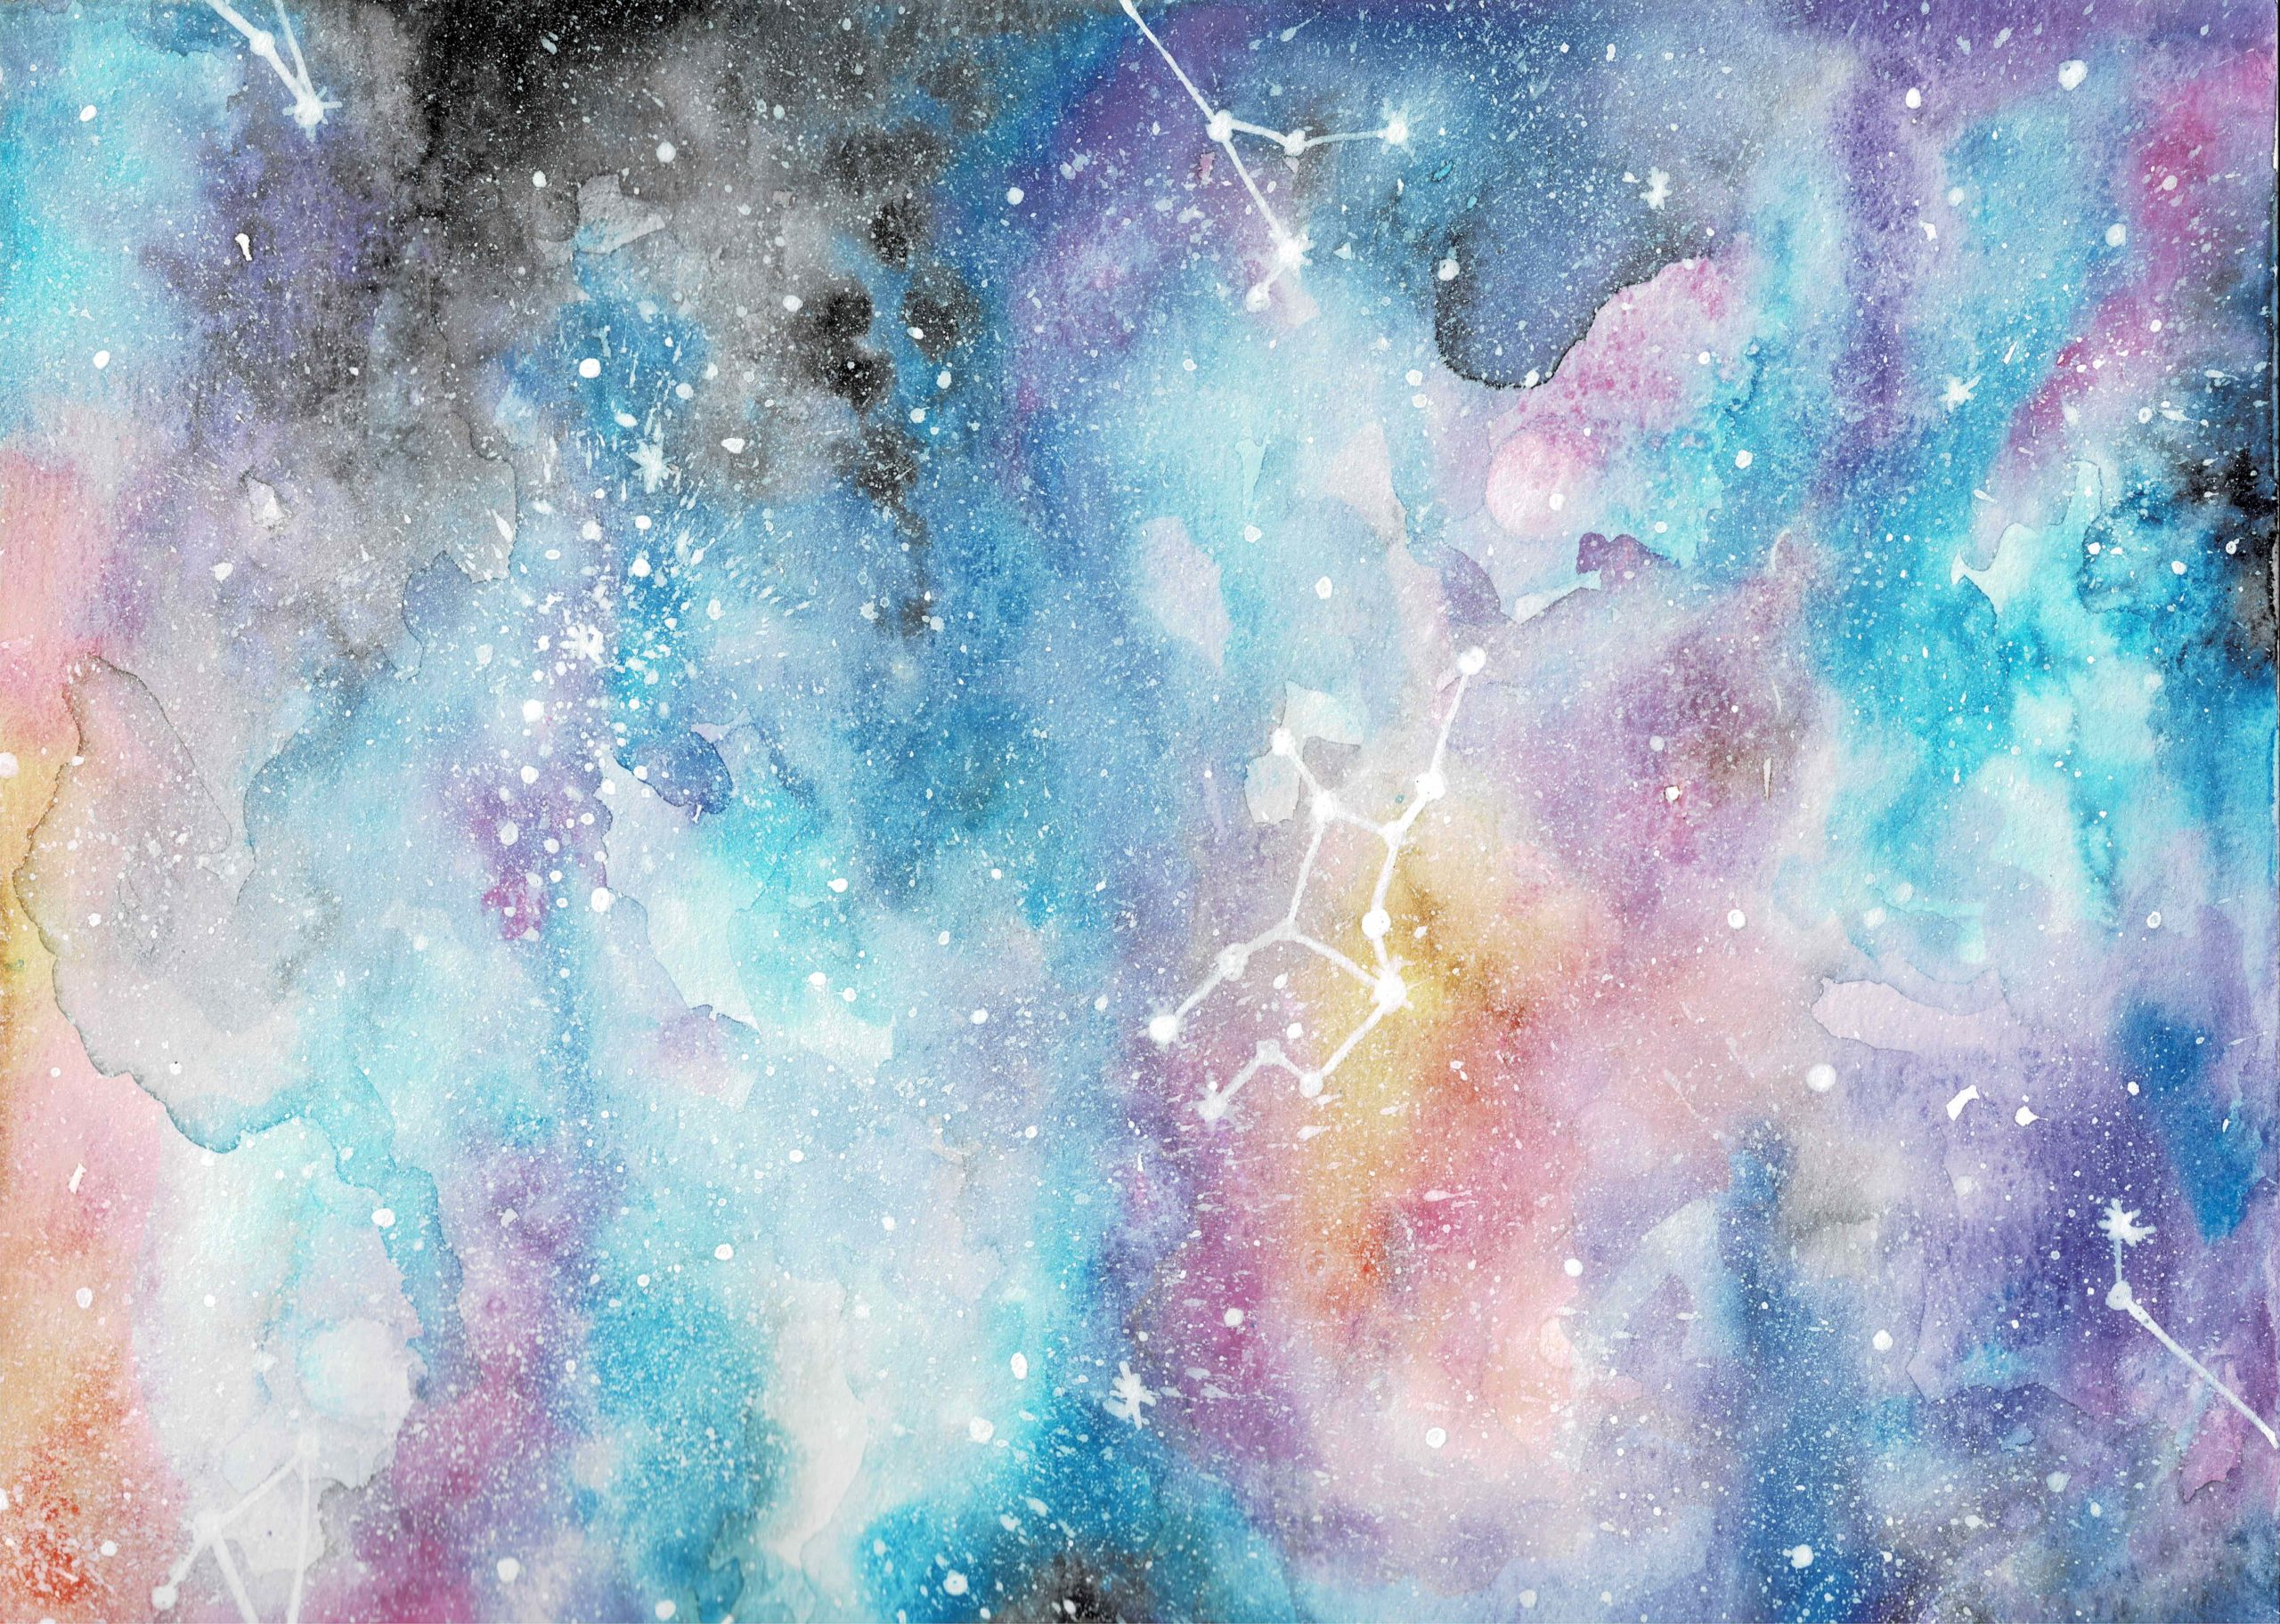 Watercolor painting of an abstract galaxy with black, blue, purple, yellow, and pink color with white ink splatters as stars with a Virgo constellation painted in the middle